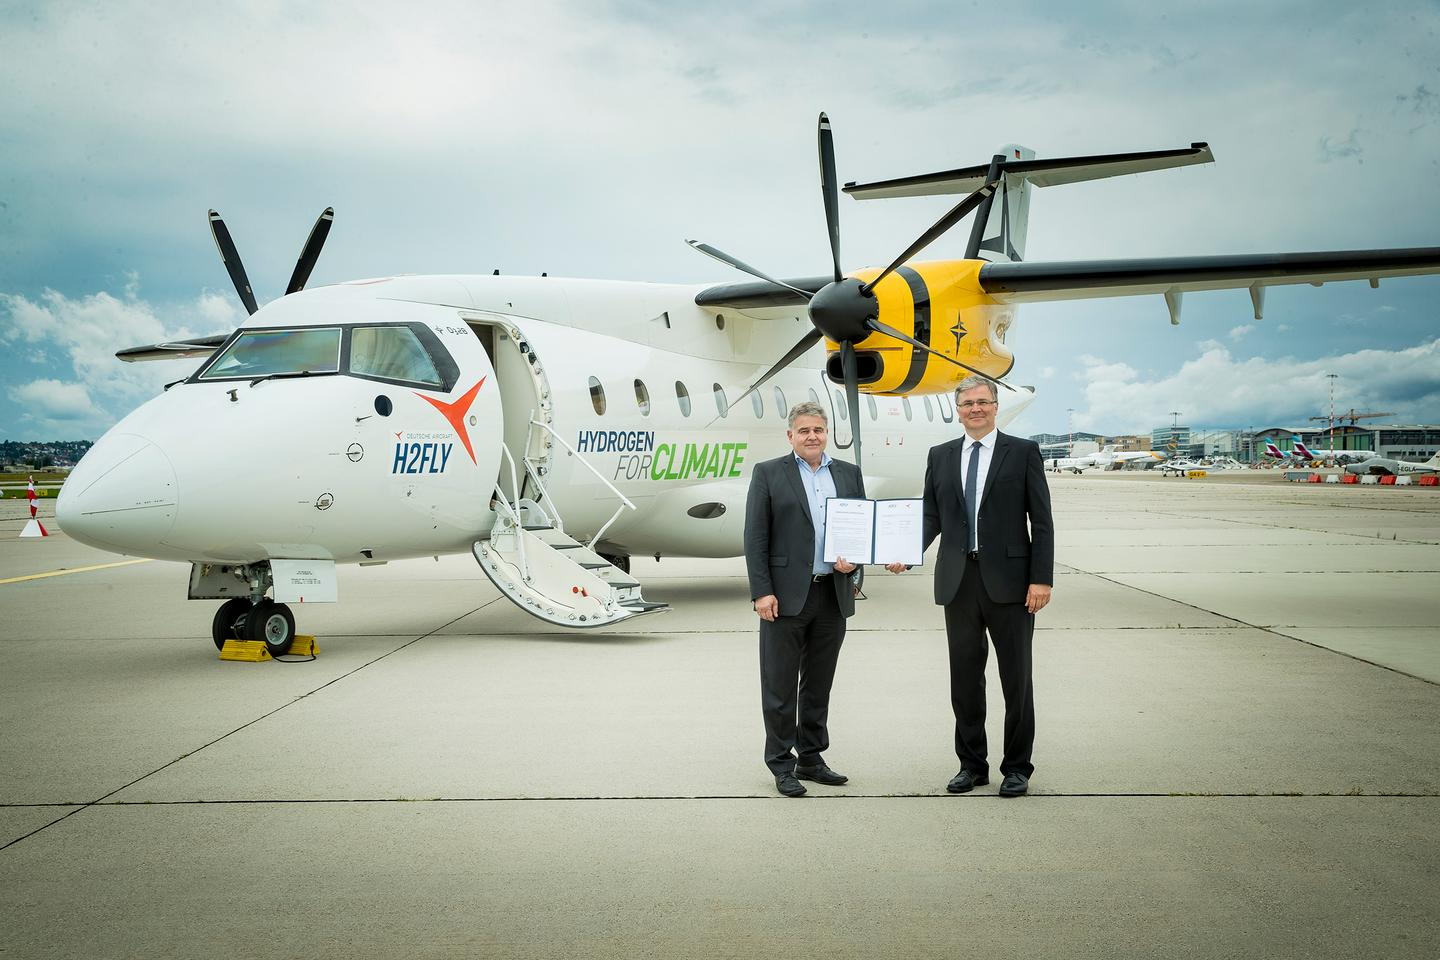 H2Fly and Deutsche Aircraft have signed a MoU to take this Dornier 328 and build it into a hydrogen-fuel-cell powertrain demonstrator